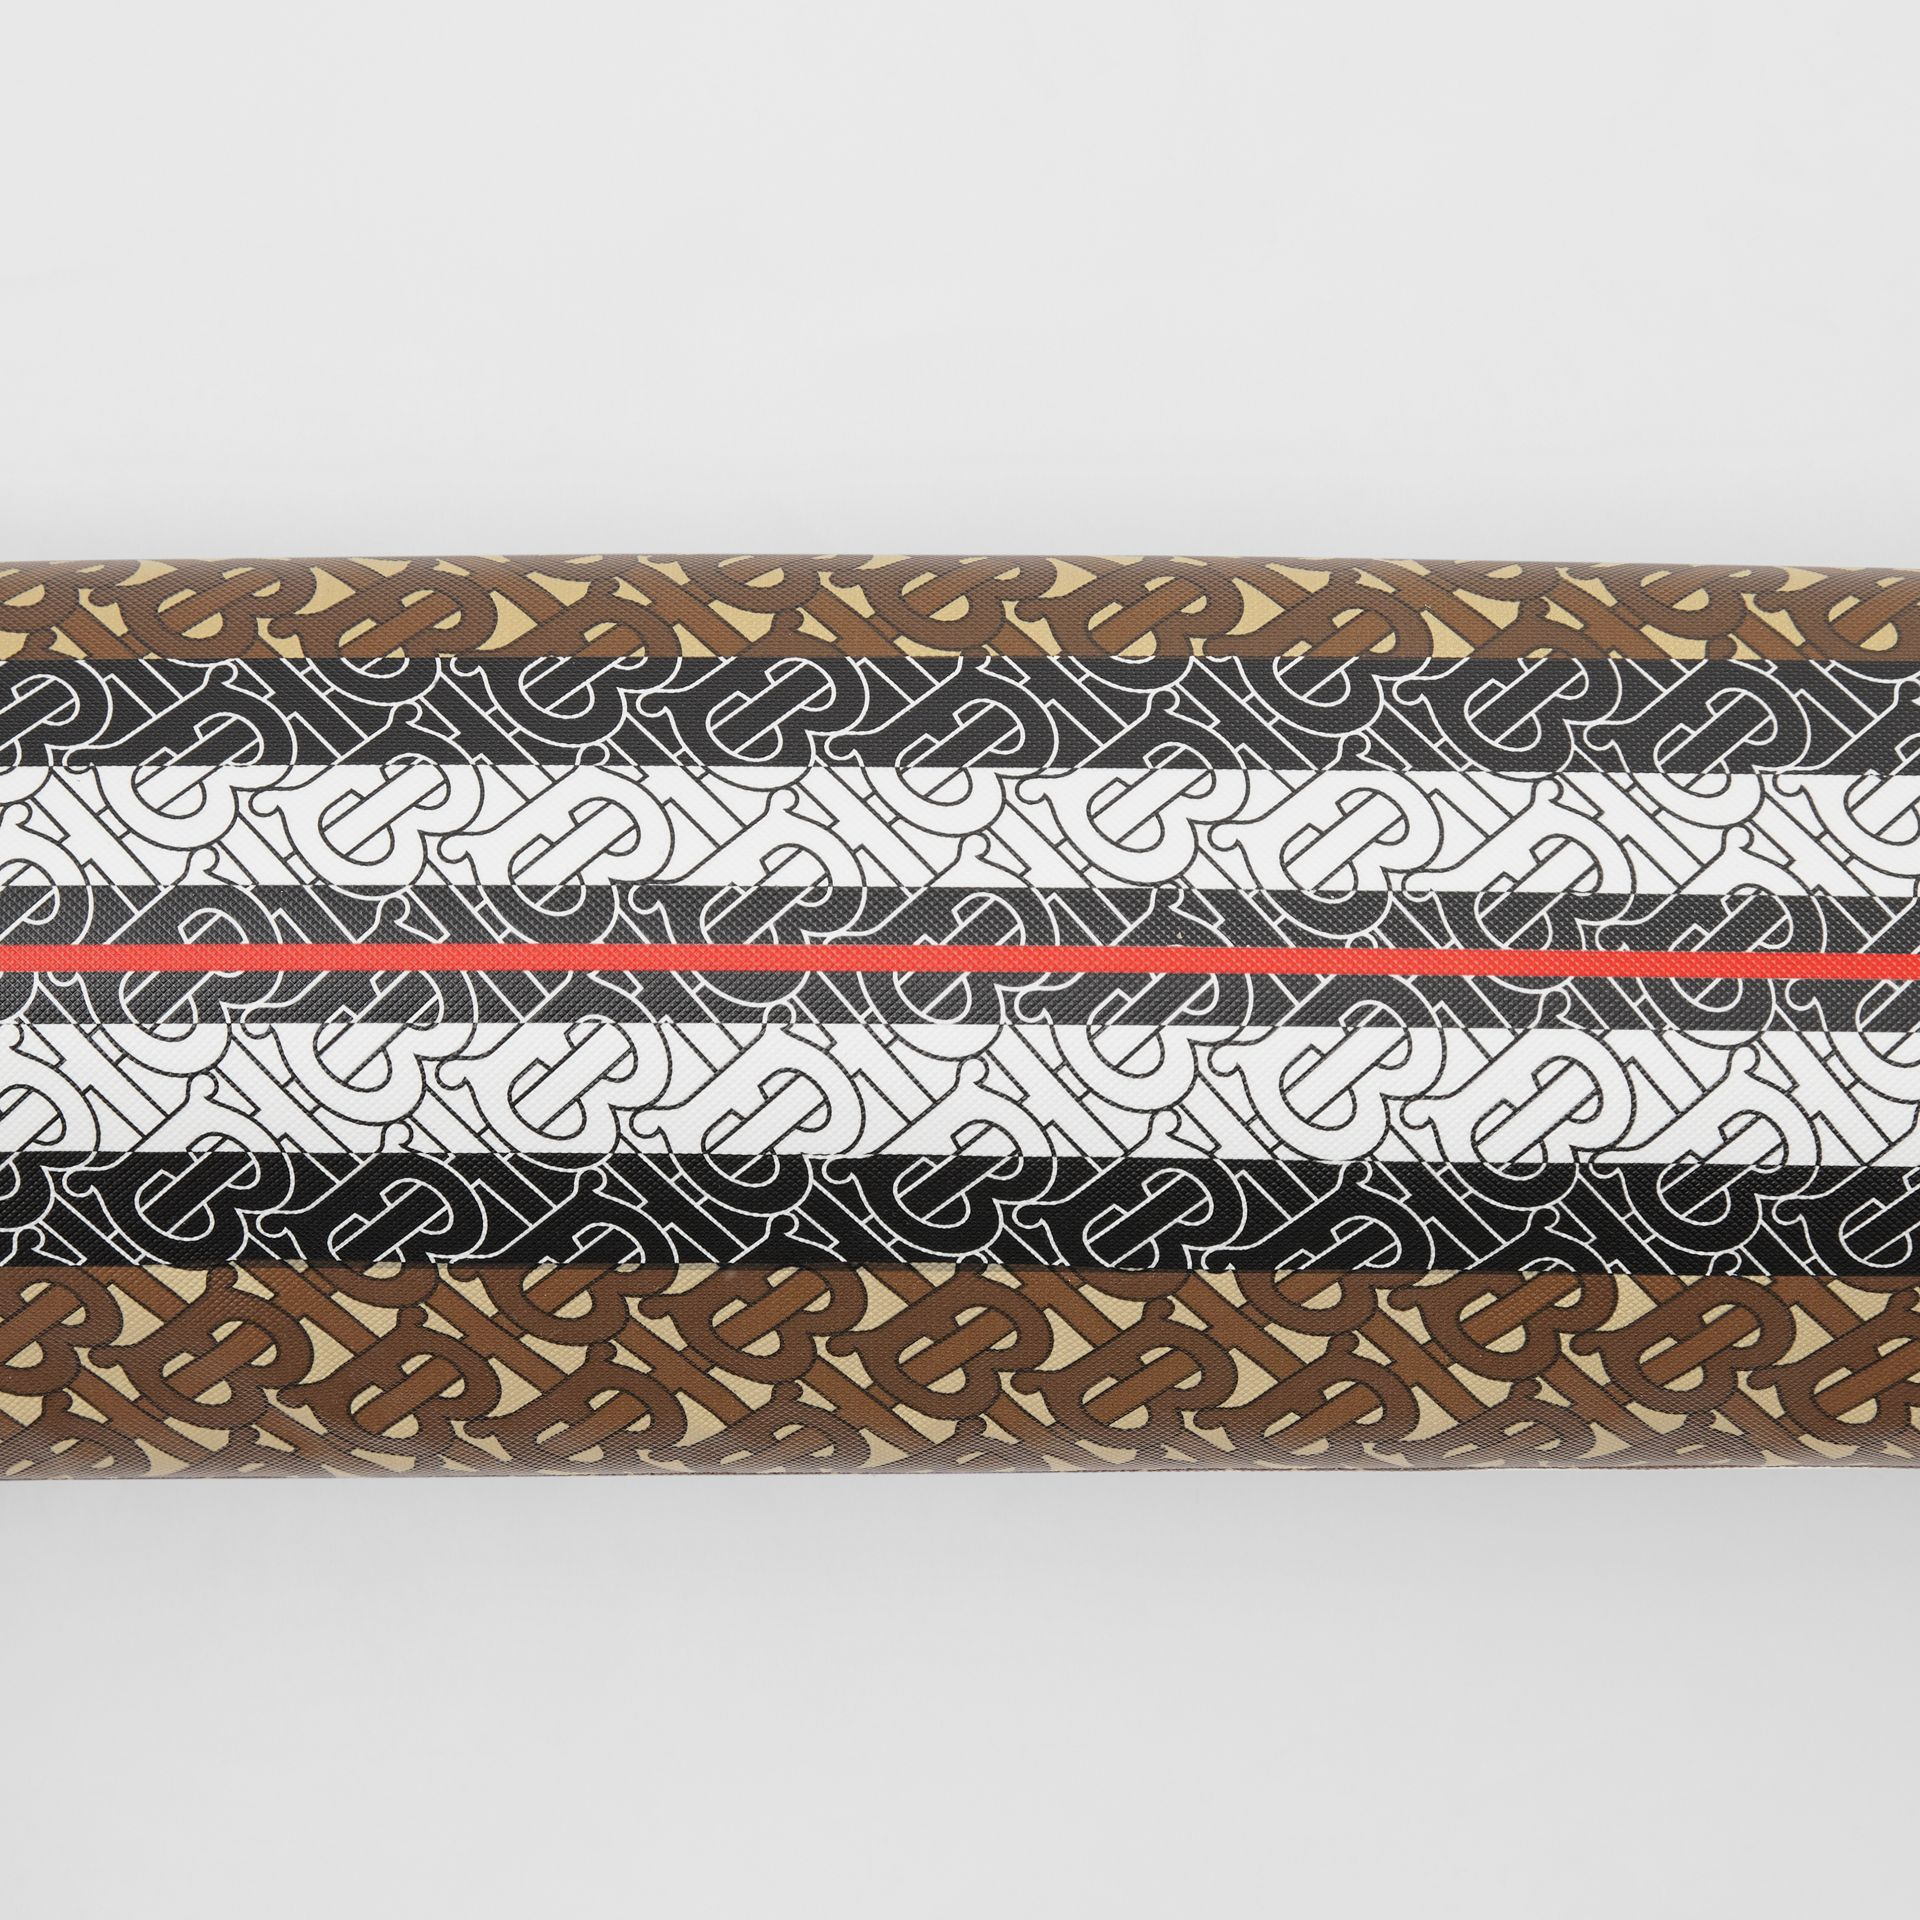 Liforme x Burberry Monogram Motif Yoga Mat in Bridle Brown | Burberry - gallery image 1